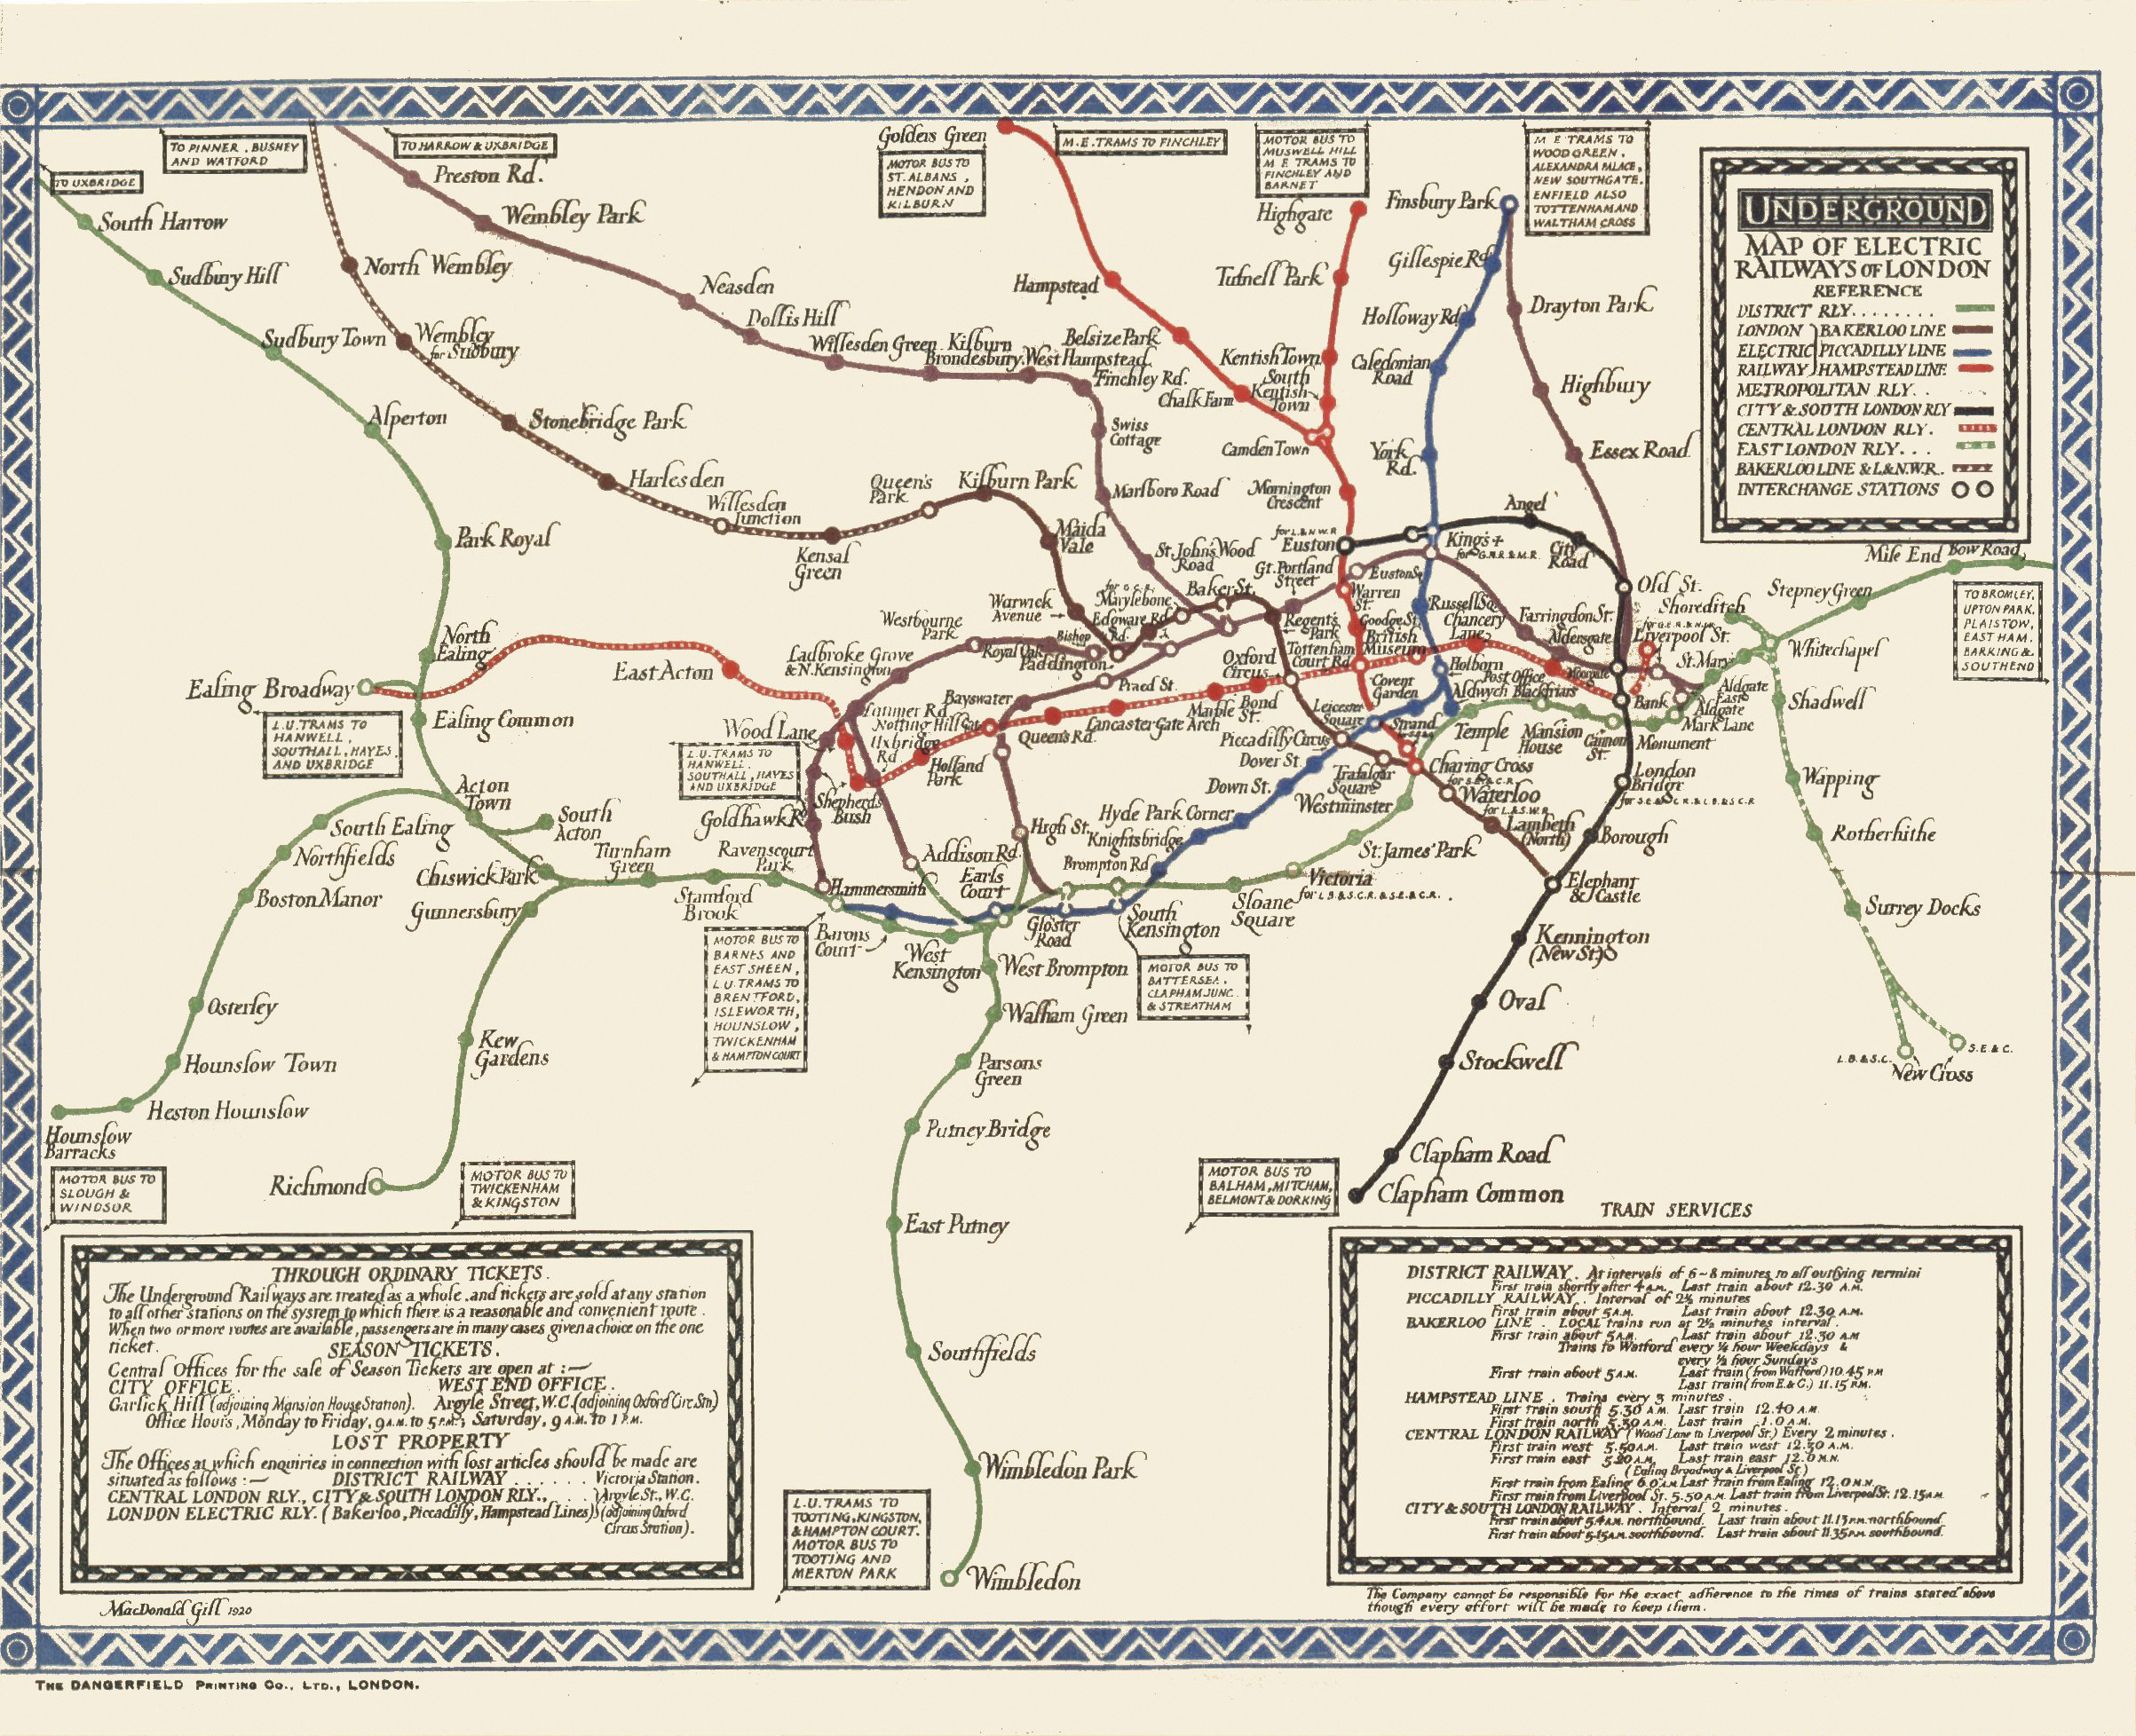 The Tube Map in the 1920's